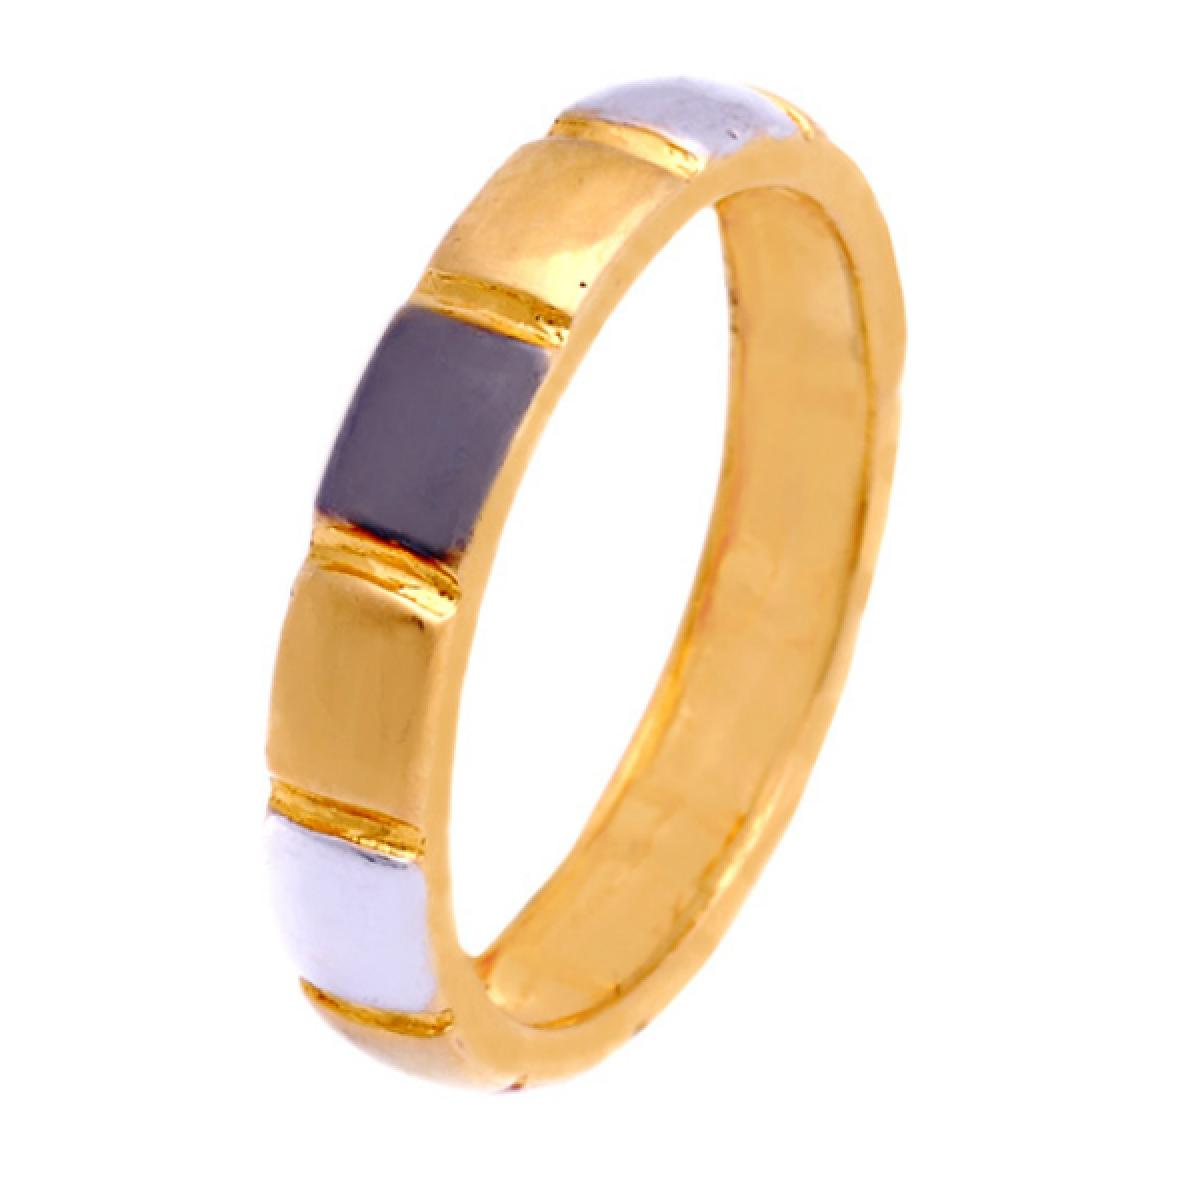 gold casting ring with rodium